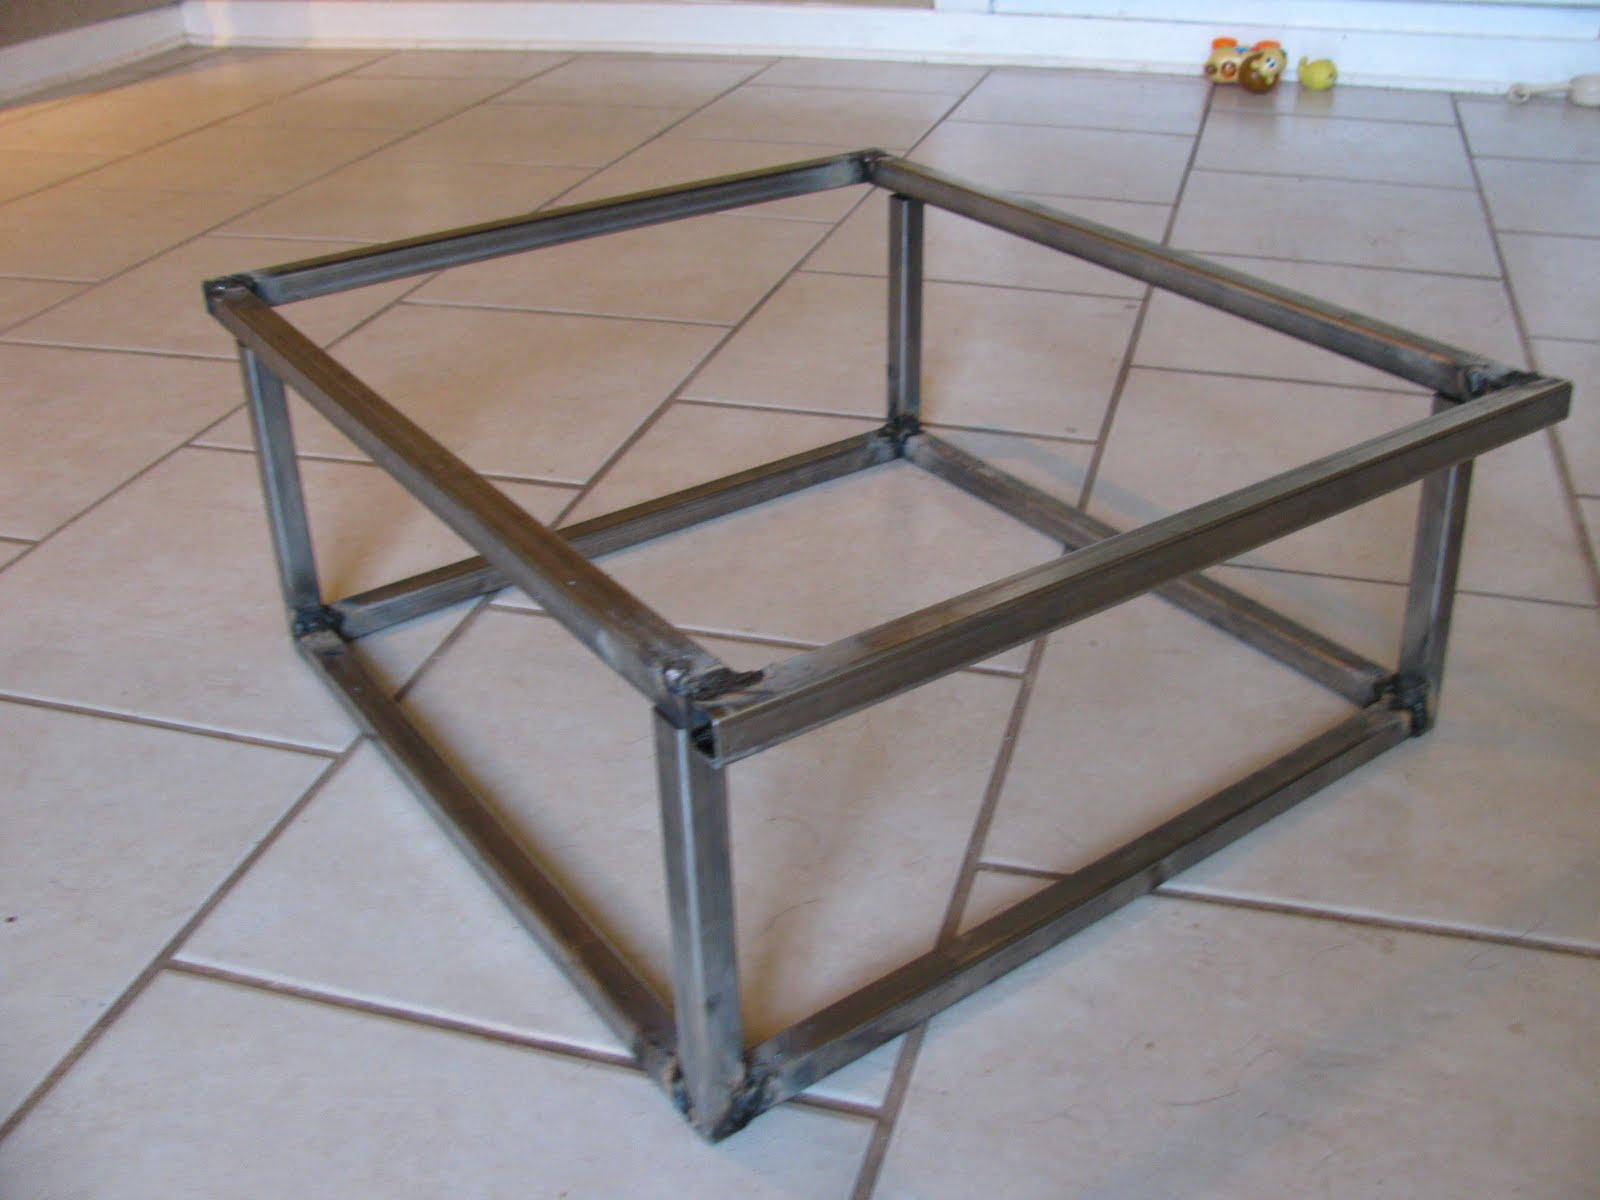 Adventures In Creating Coffee Table Part Deux